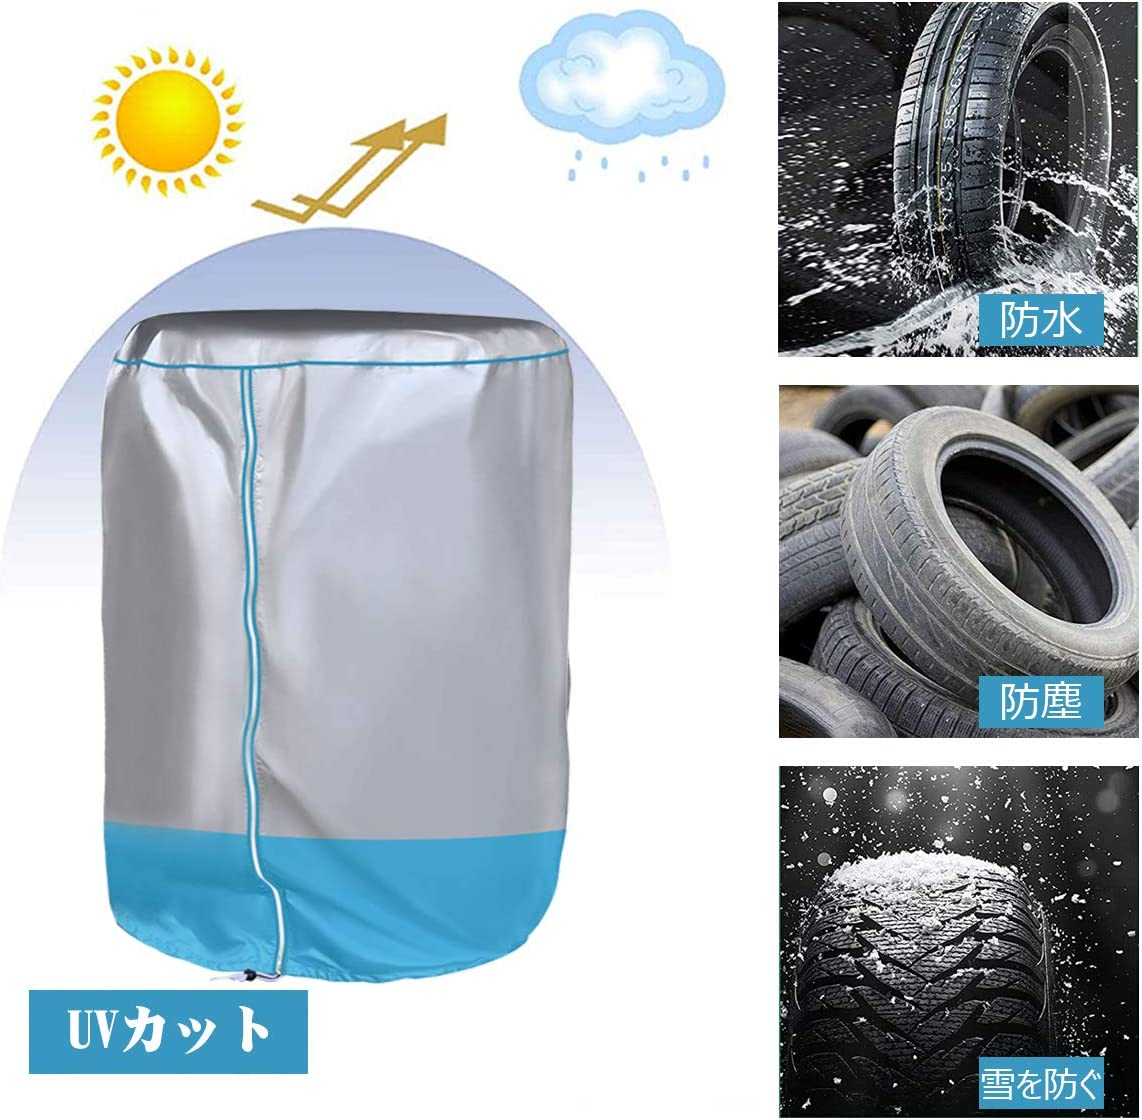 ordinary wheel tire cover, Large TireHide Seasonal Tire Outdoor Tire Covers,Diameter28(Diameters-71CM) waterproof automobile tire rack Tire storage cover sunscreen stain protection dust protection